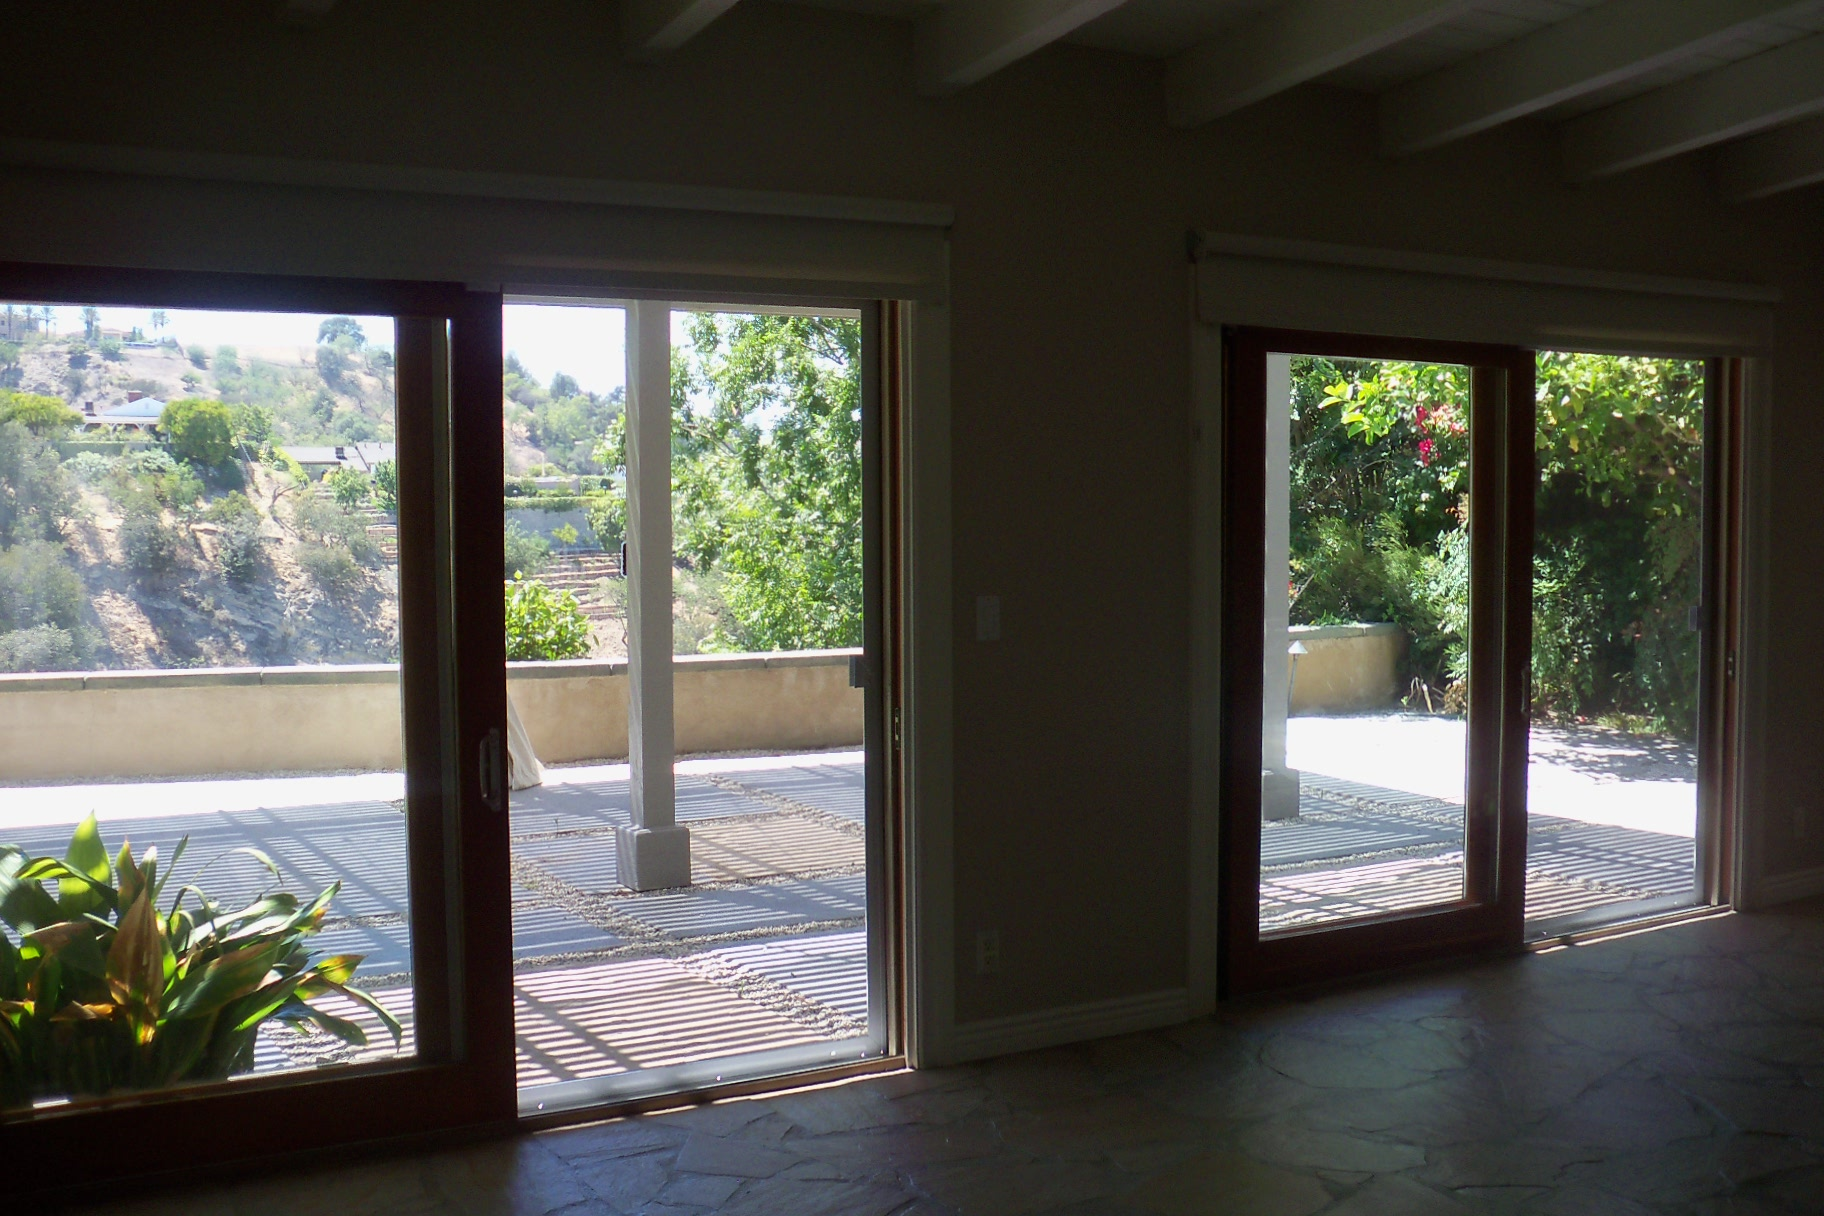 Extruded heavy duty Mobile Screen Service installing Screen Doors in Studio City Door in Studio City